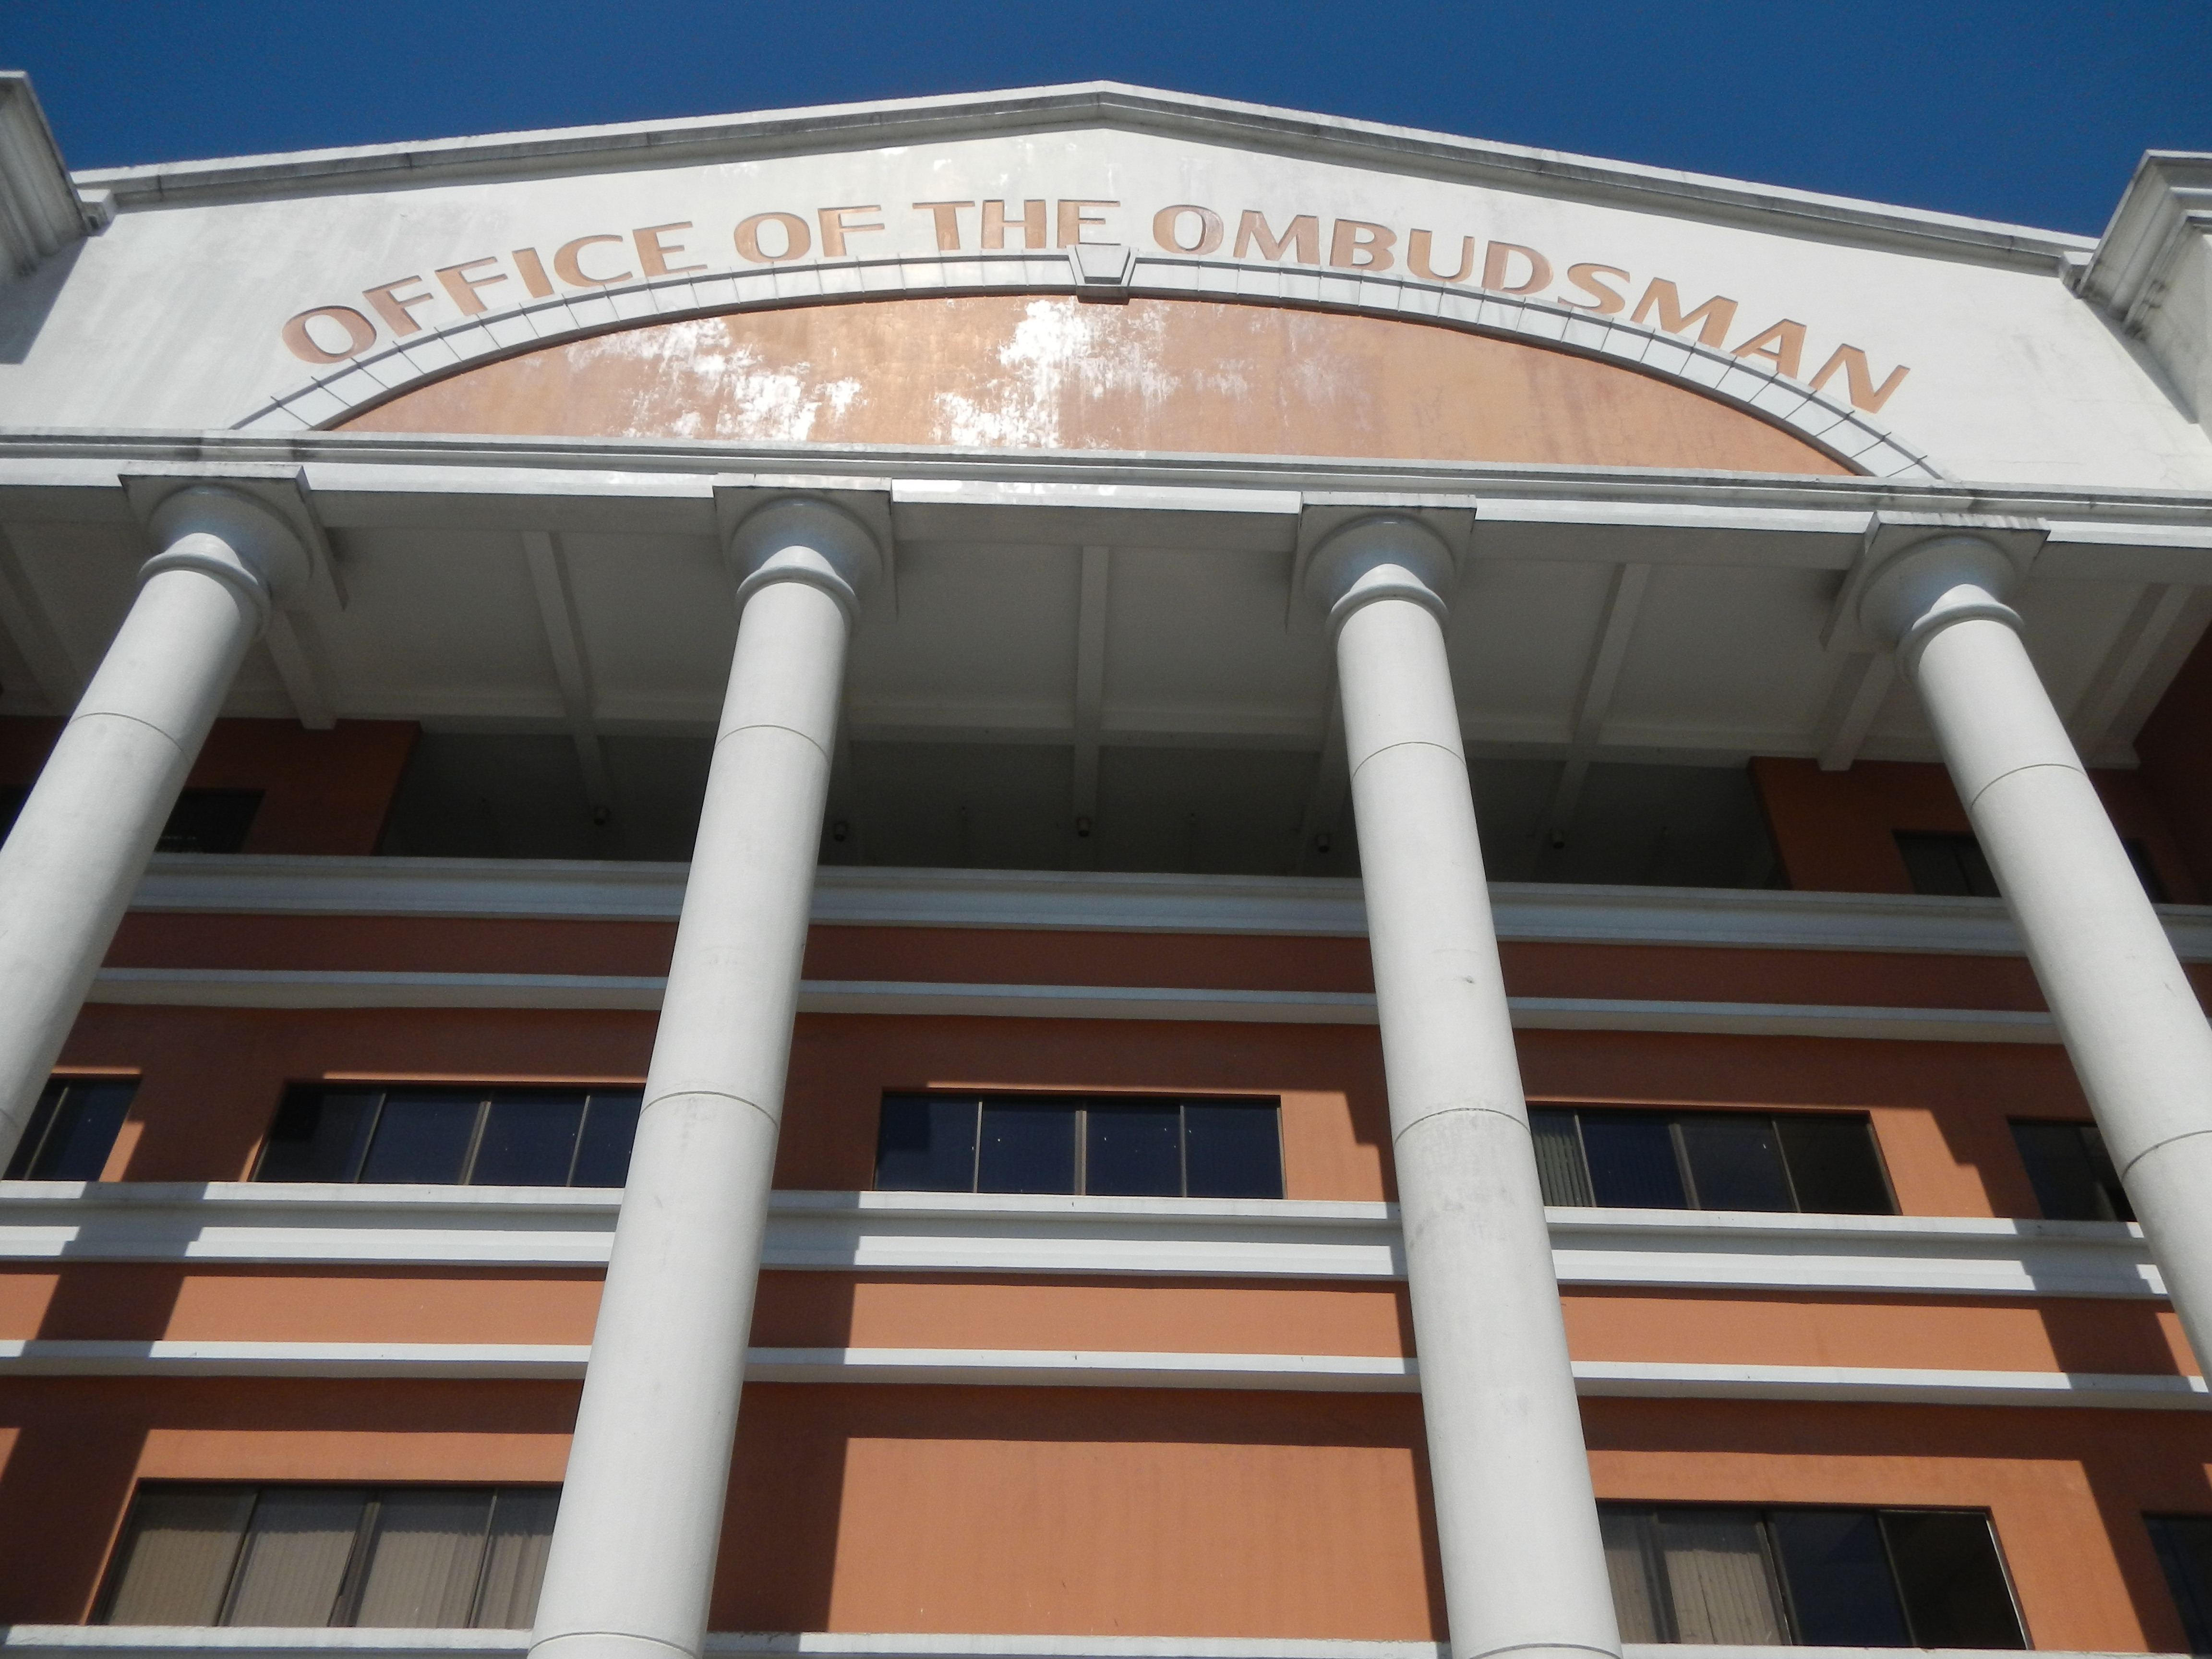 Central Office of the Ombudsman Building, Agham Road, North Triangle Diliman, Quezon City  (Photo: Wikipedia/Judgefloro)